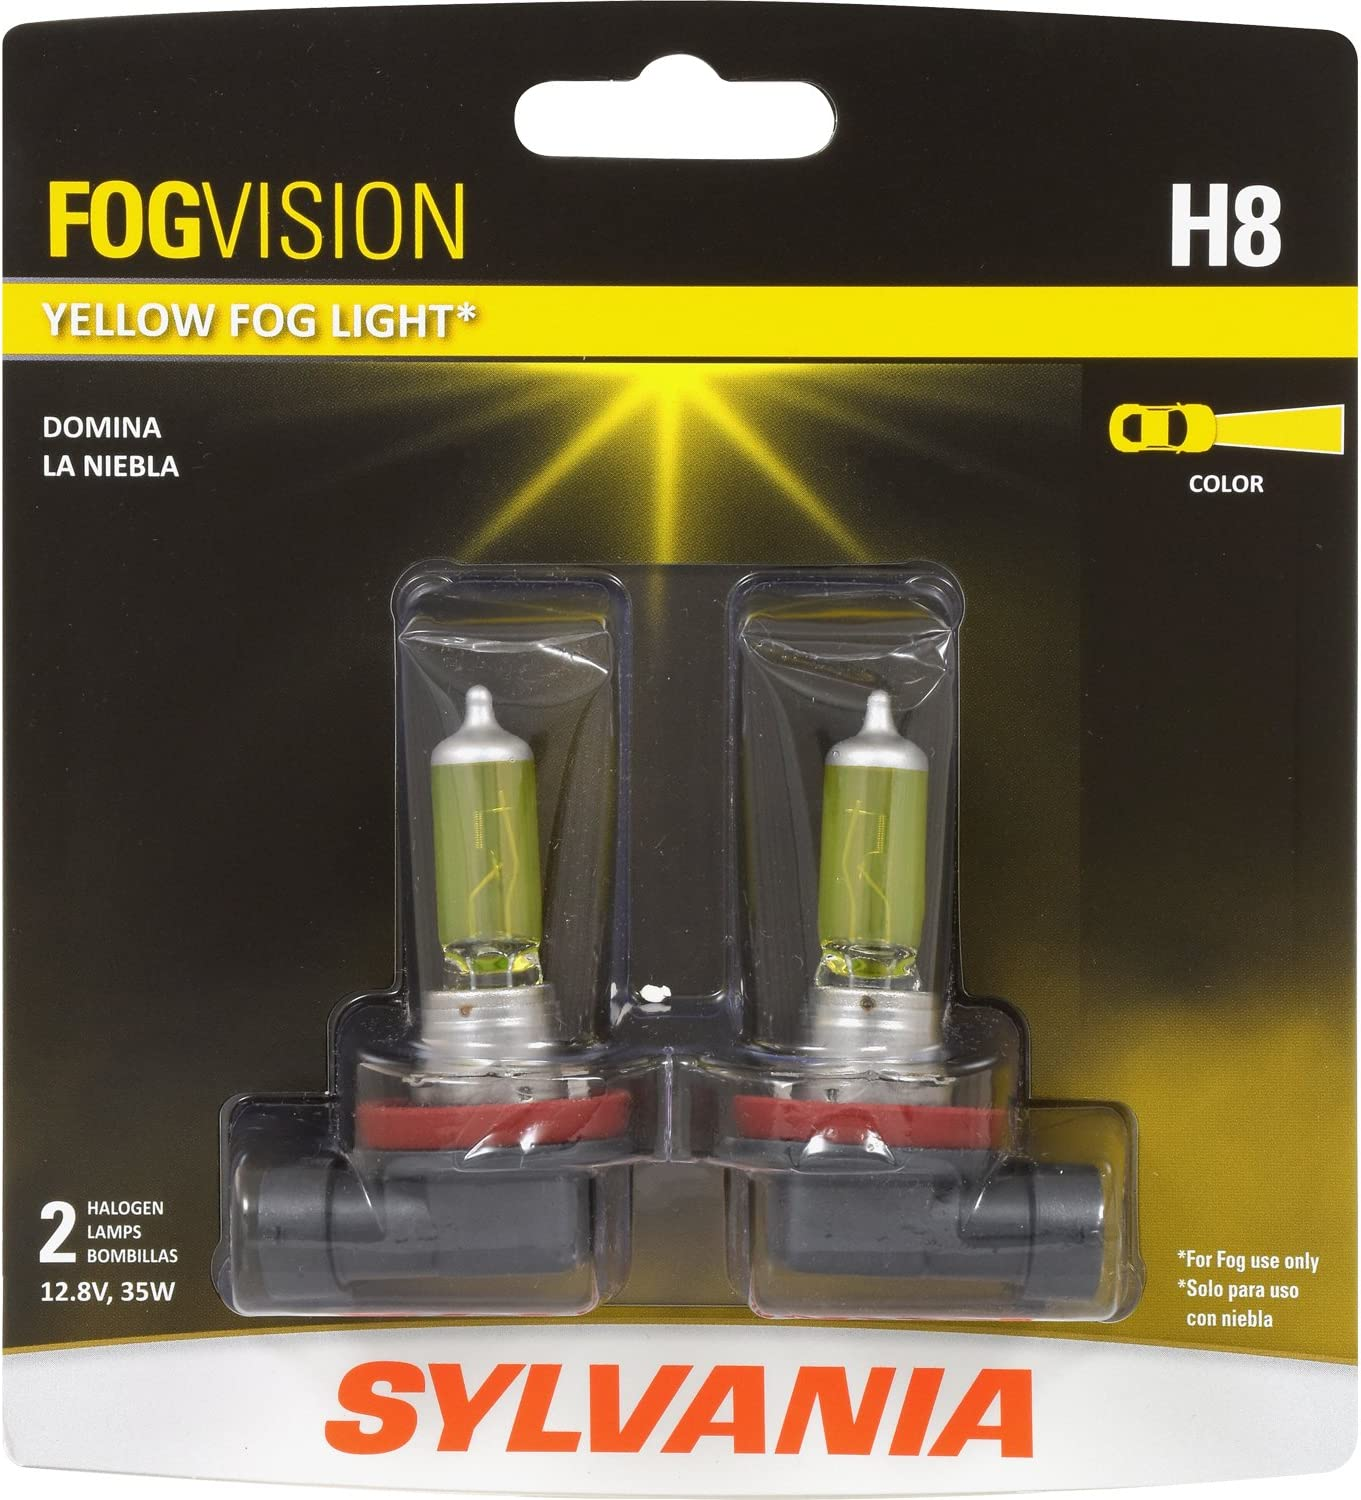 SYLVANIA H11 Fog Vision High Performance Yellow Halogen Fog Lights For Fog Use Only Contains 2 Bulbs Street Legal Sleek Style /& Improved Safety